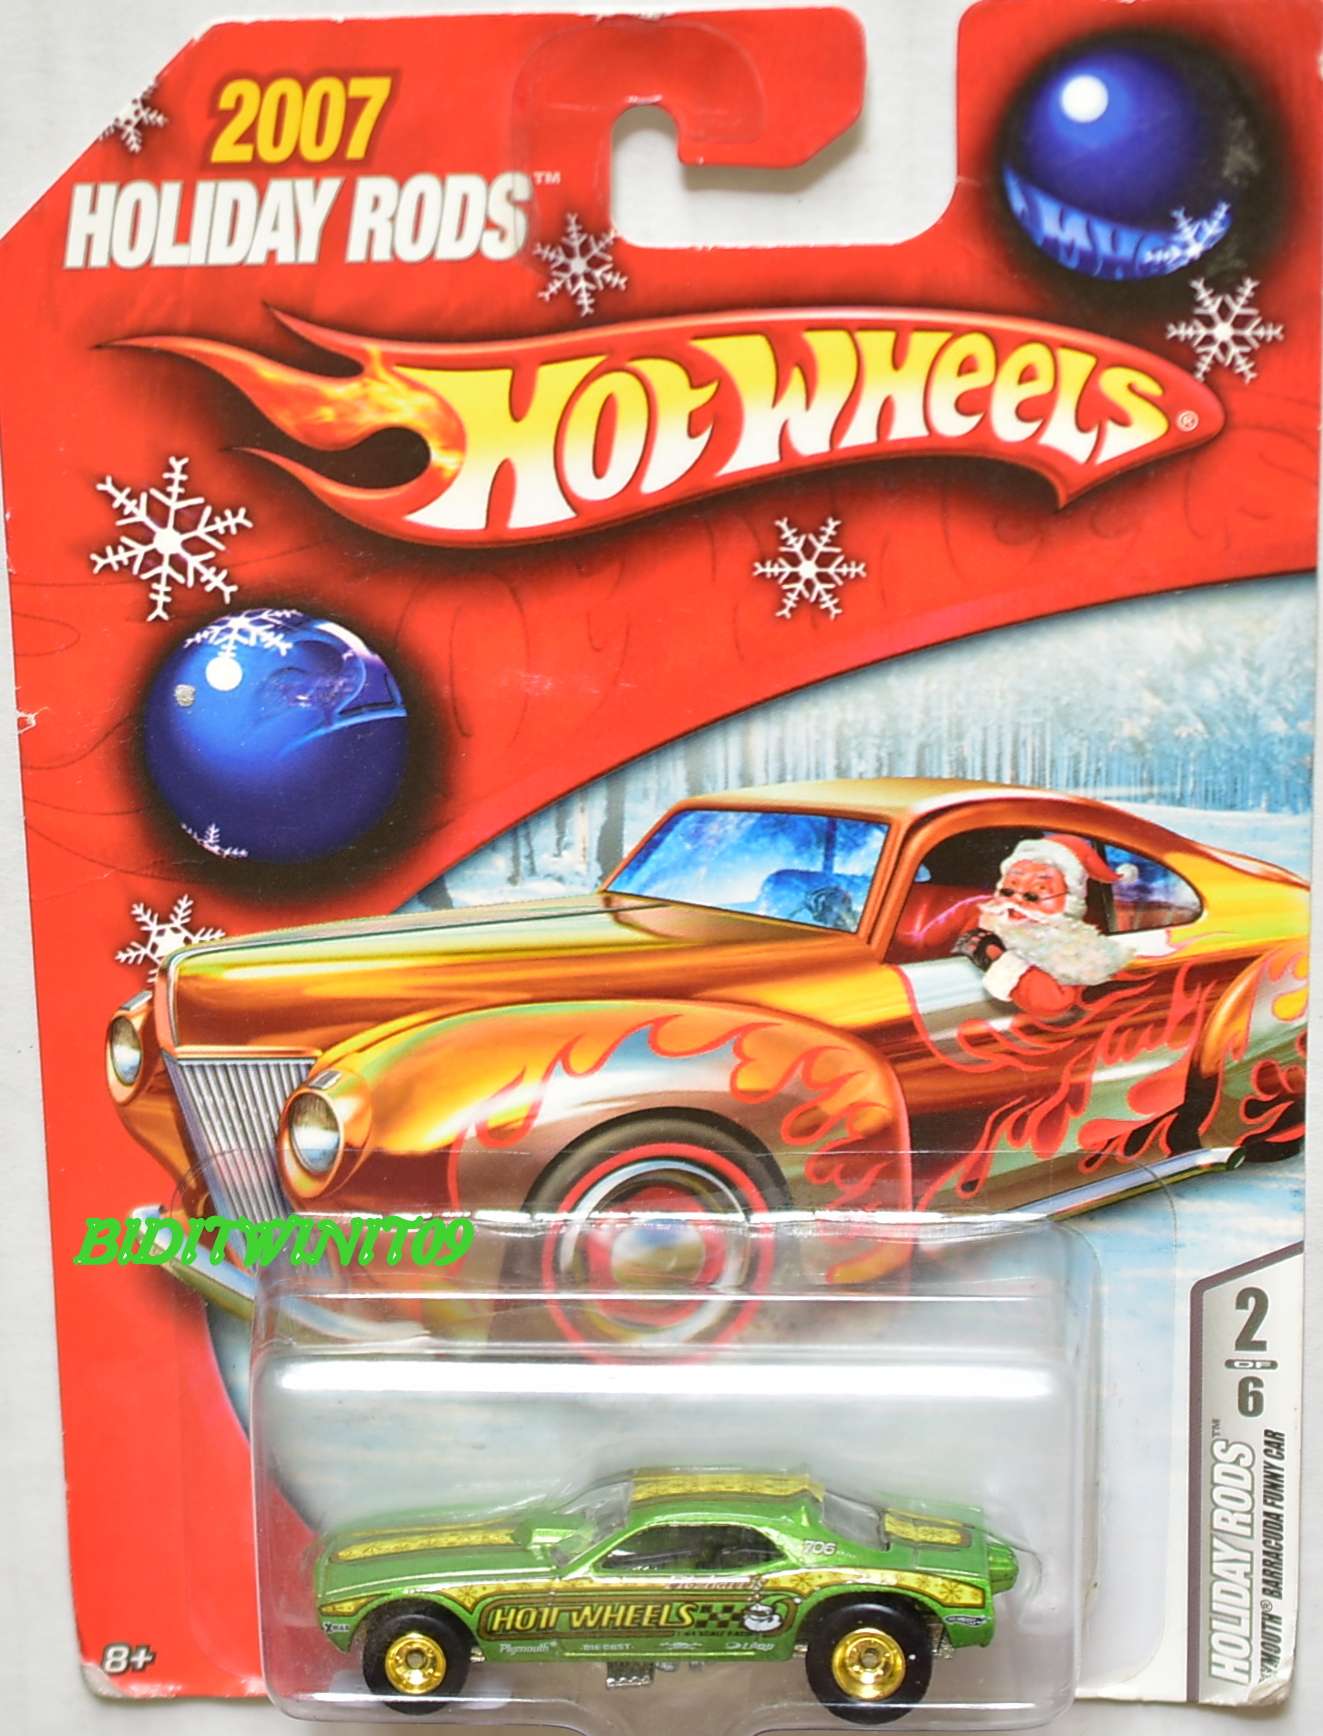 HOT WHEELS 2007 HOLIDAY RODS PLYMOUTH BARRACUDA FUNNY CAR #2/6